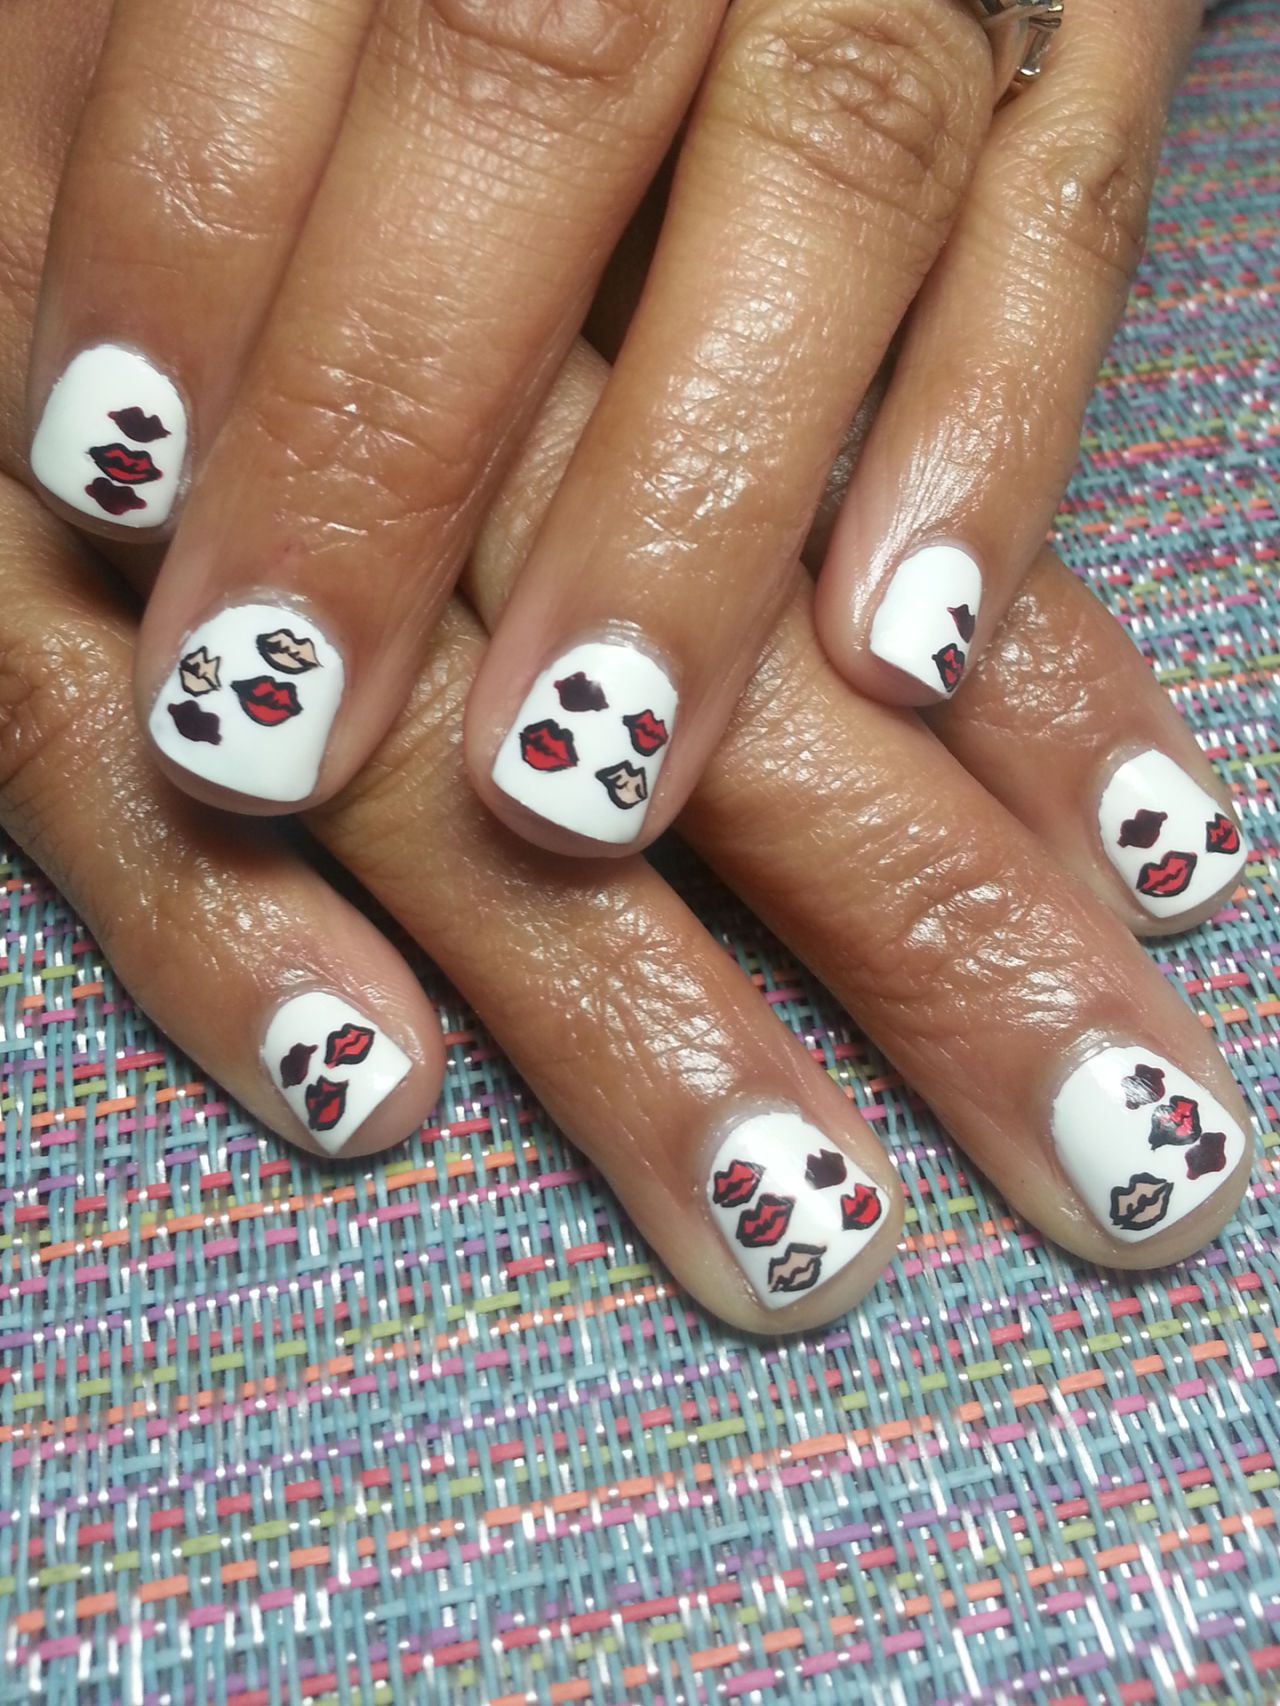 14 fun valentines day nail art designs v day nail inspiration - Valentines Nail